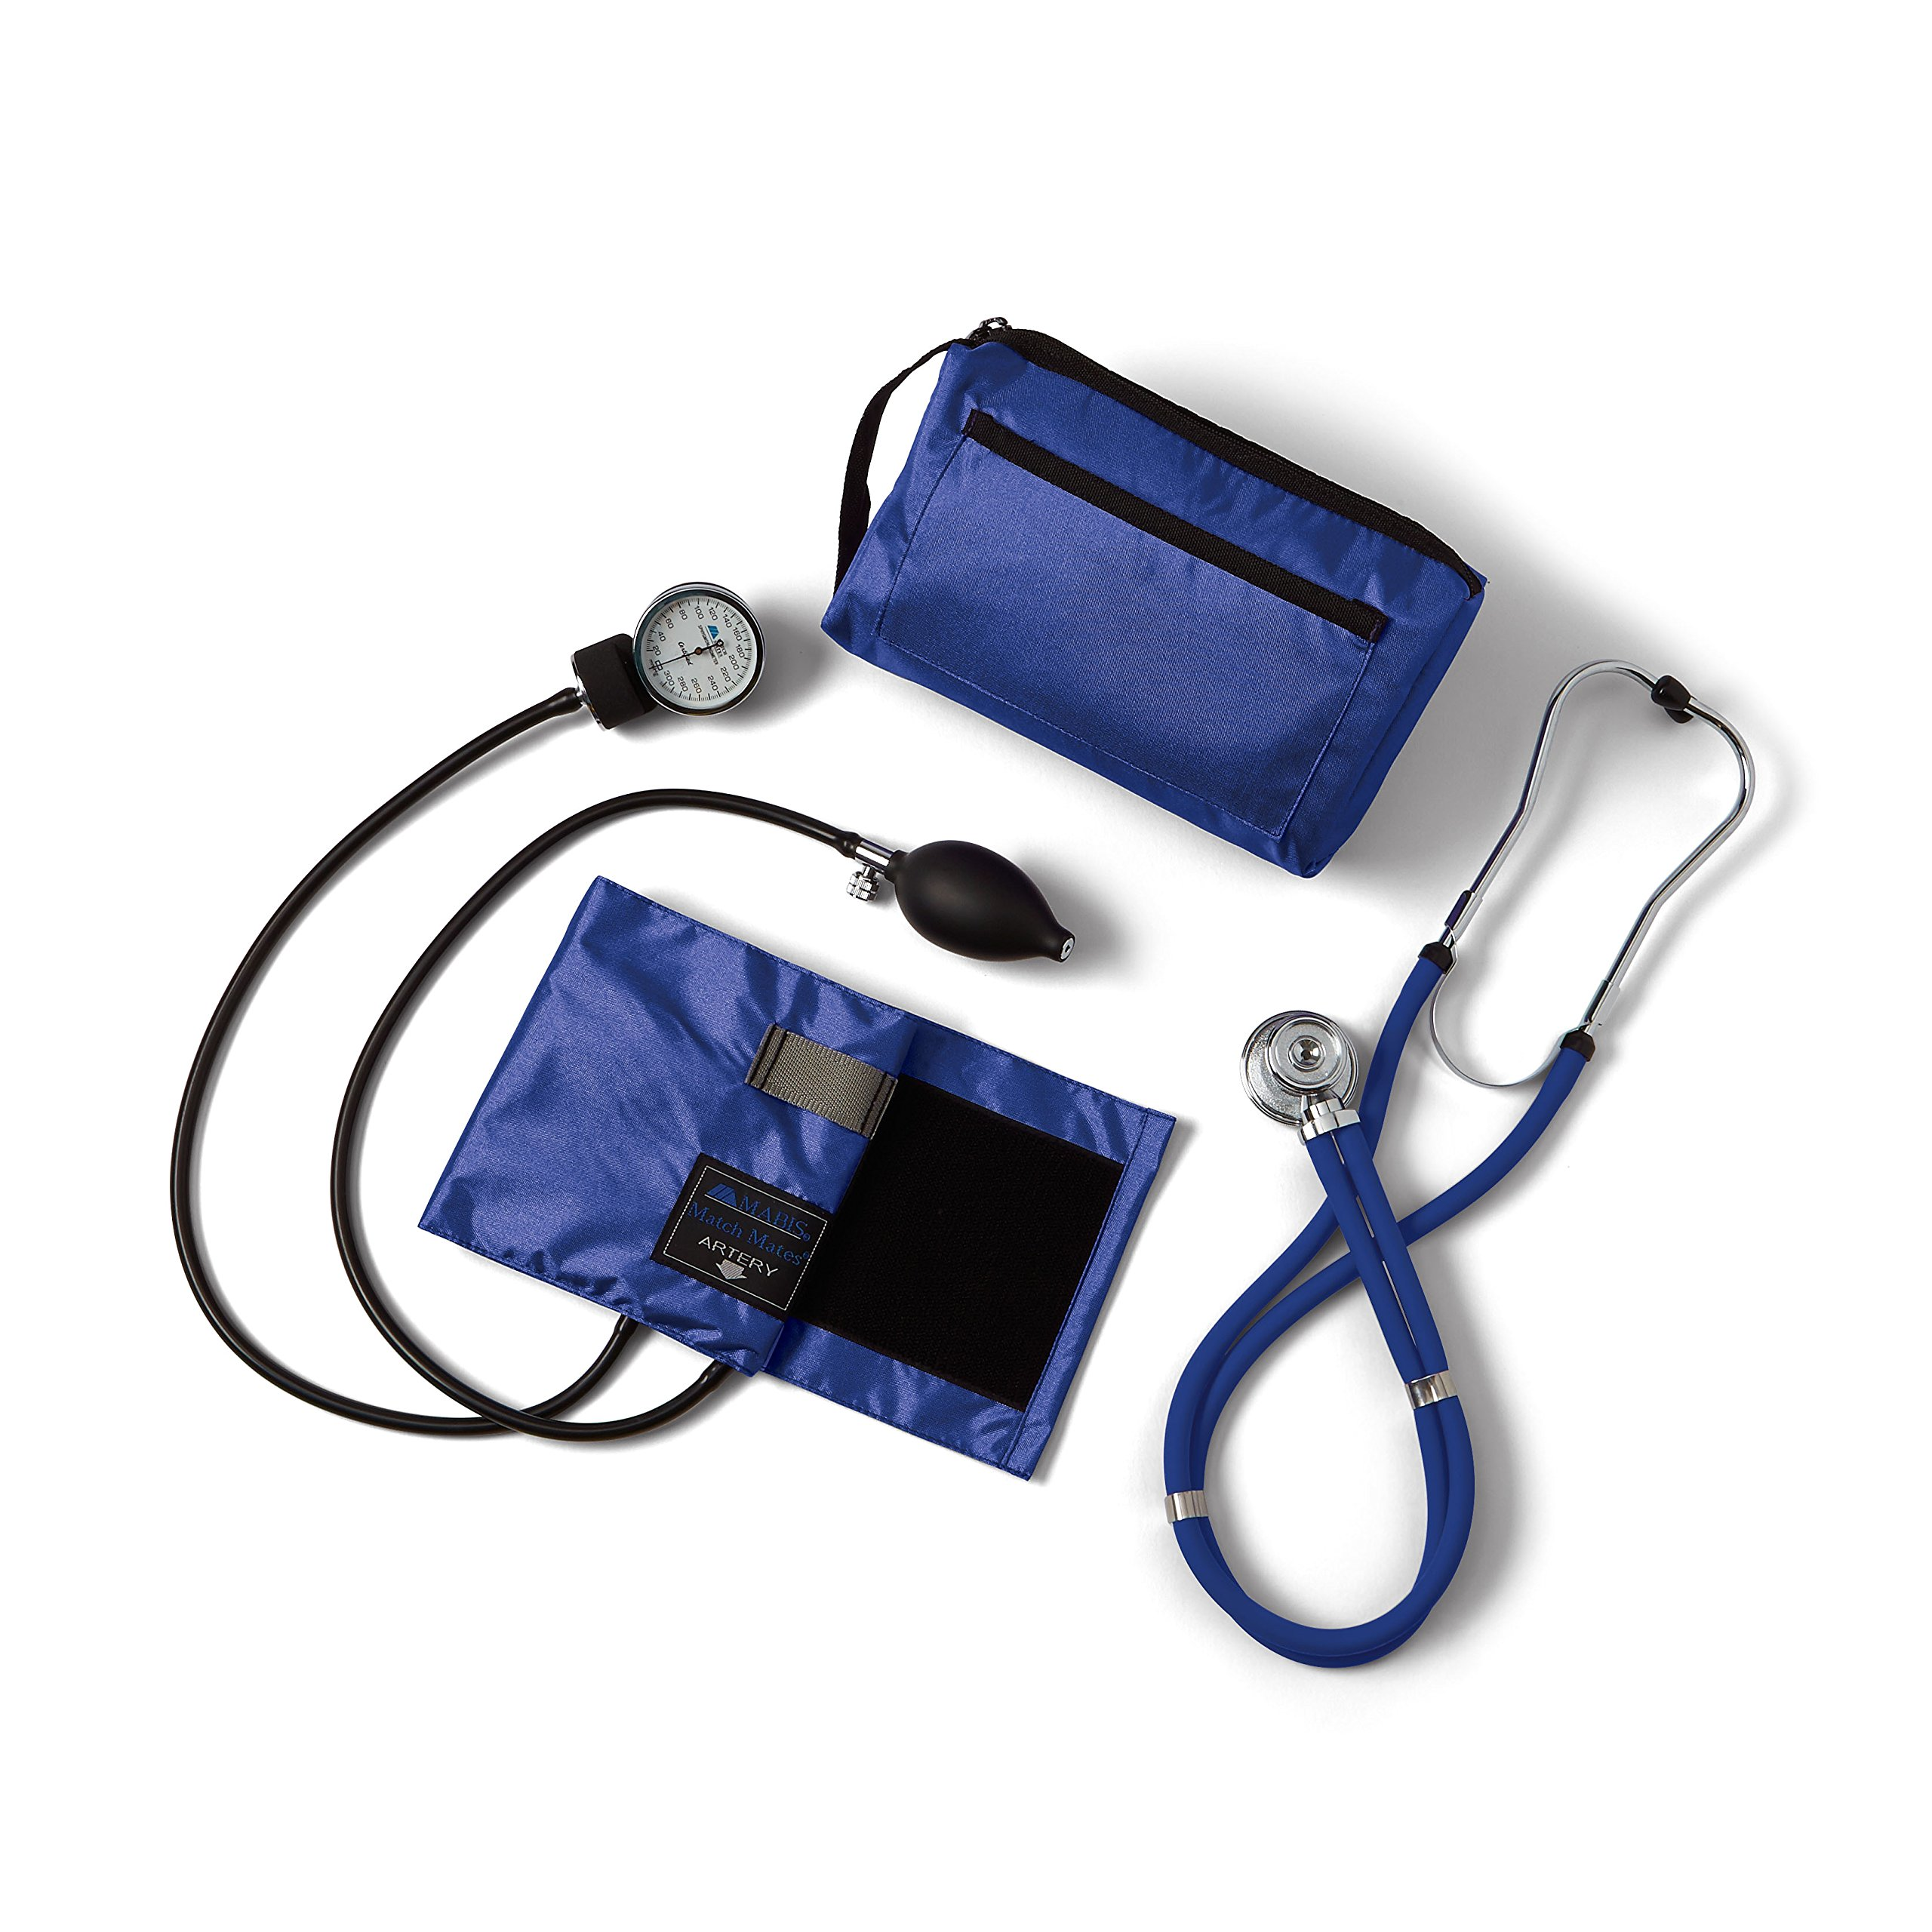 Medline Compli-Mates Aneroid Sphygmomanometer and Sprague Rappaport Stethoscope Kit, Carrying Case, Adult Blood Pressure Cuff, Manual, Professional, Royal Blue